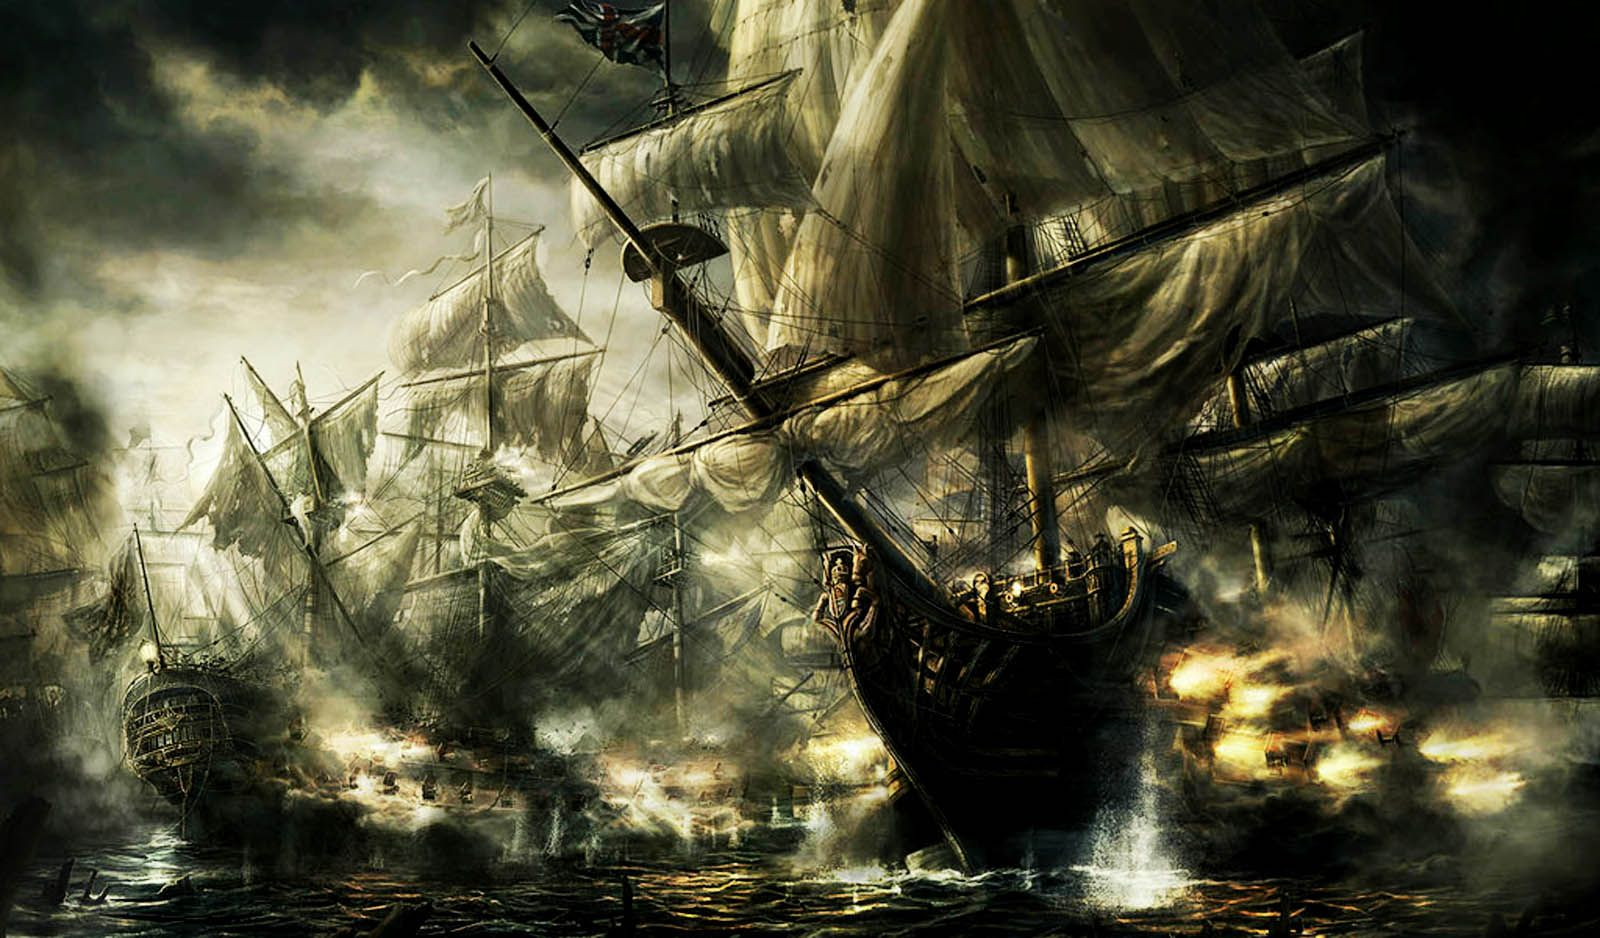 Wallpaper, Pirate Ship Wallpaper Gallery HD Wallpaper Pictures Top .